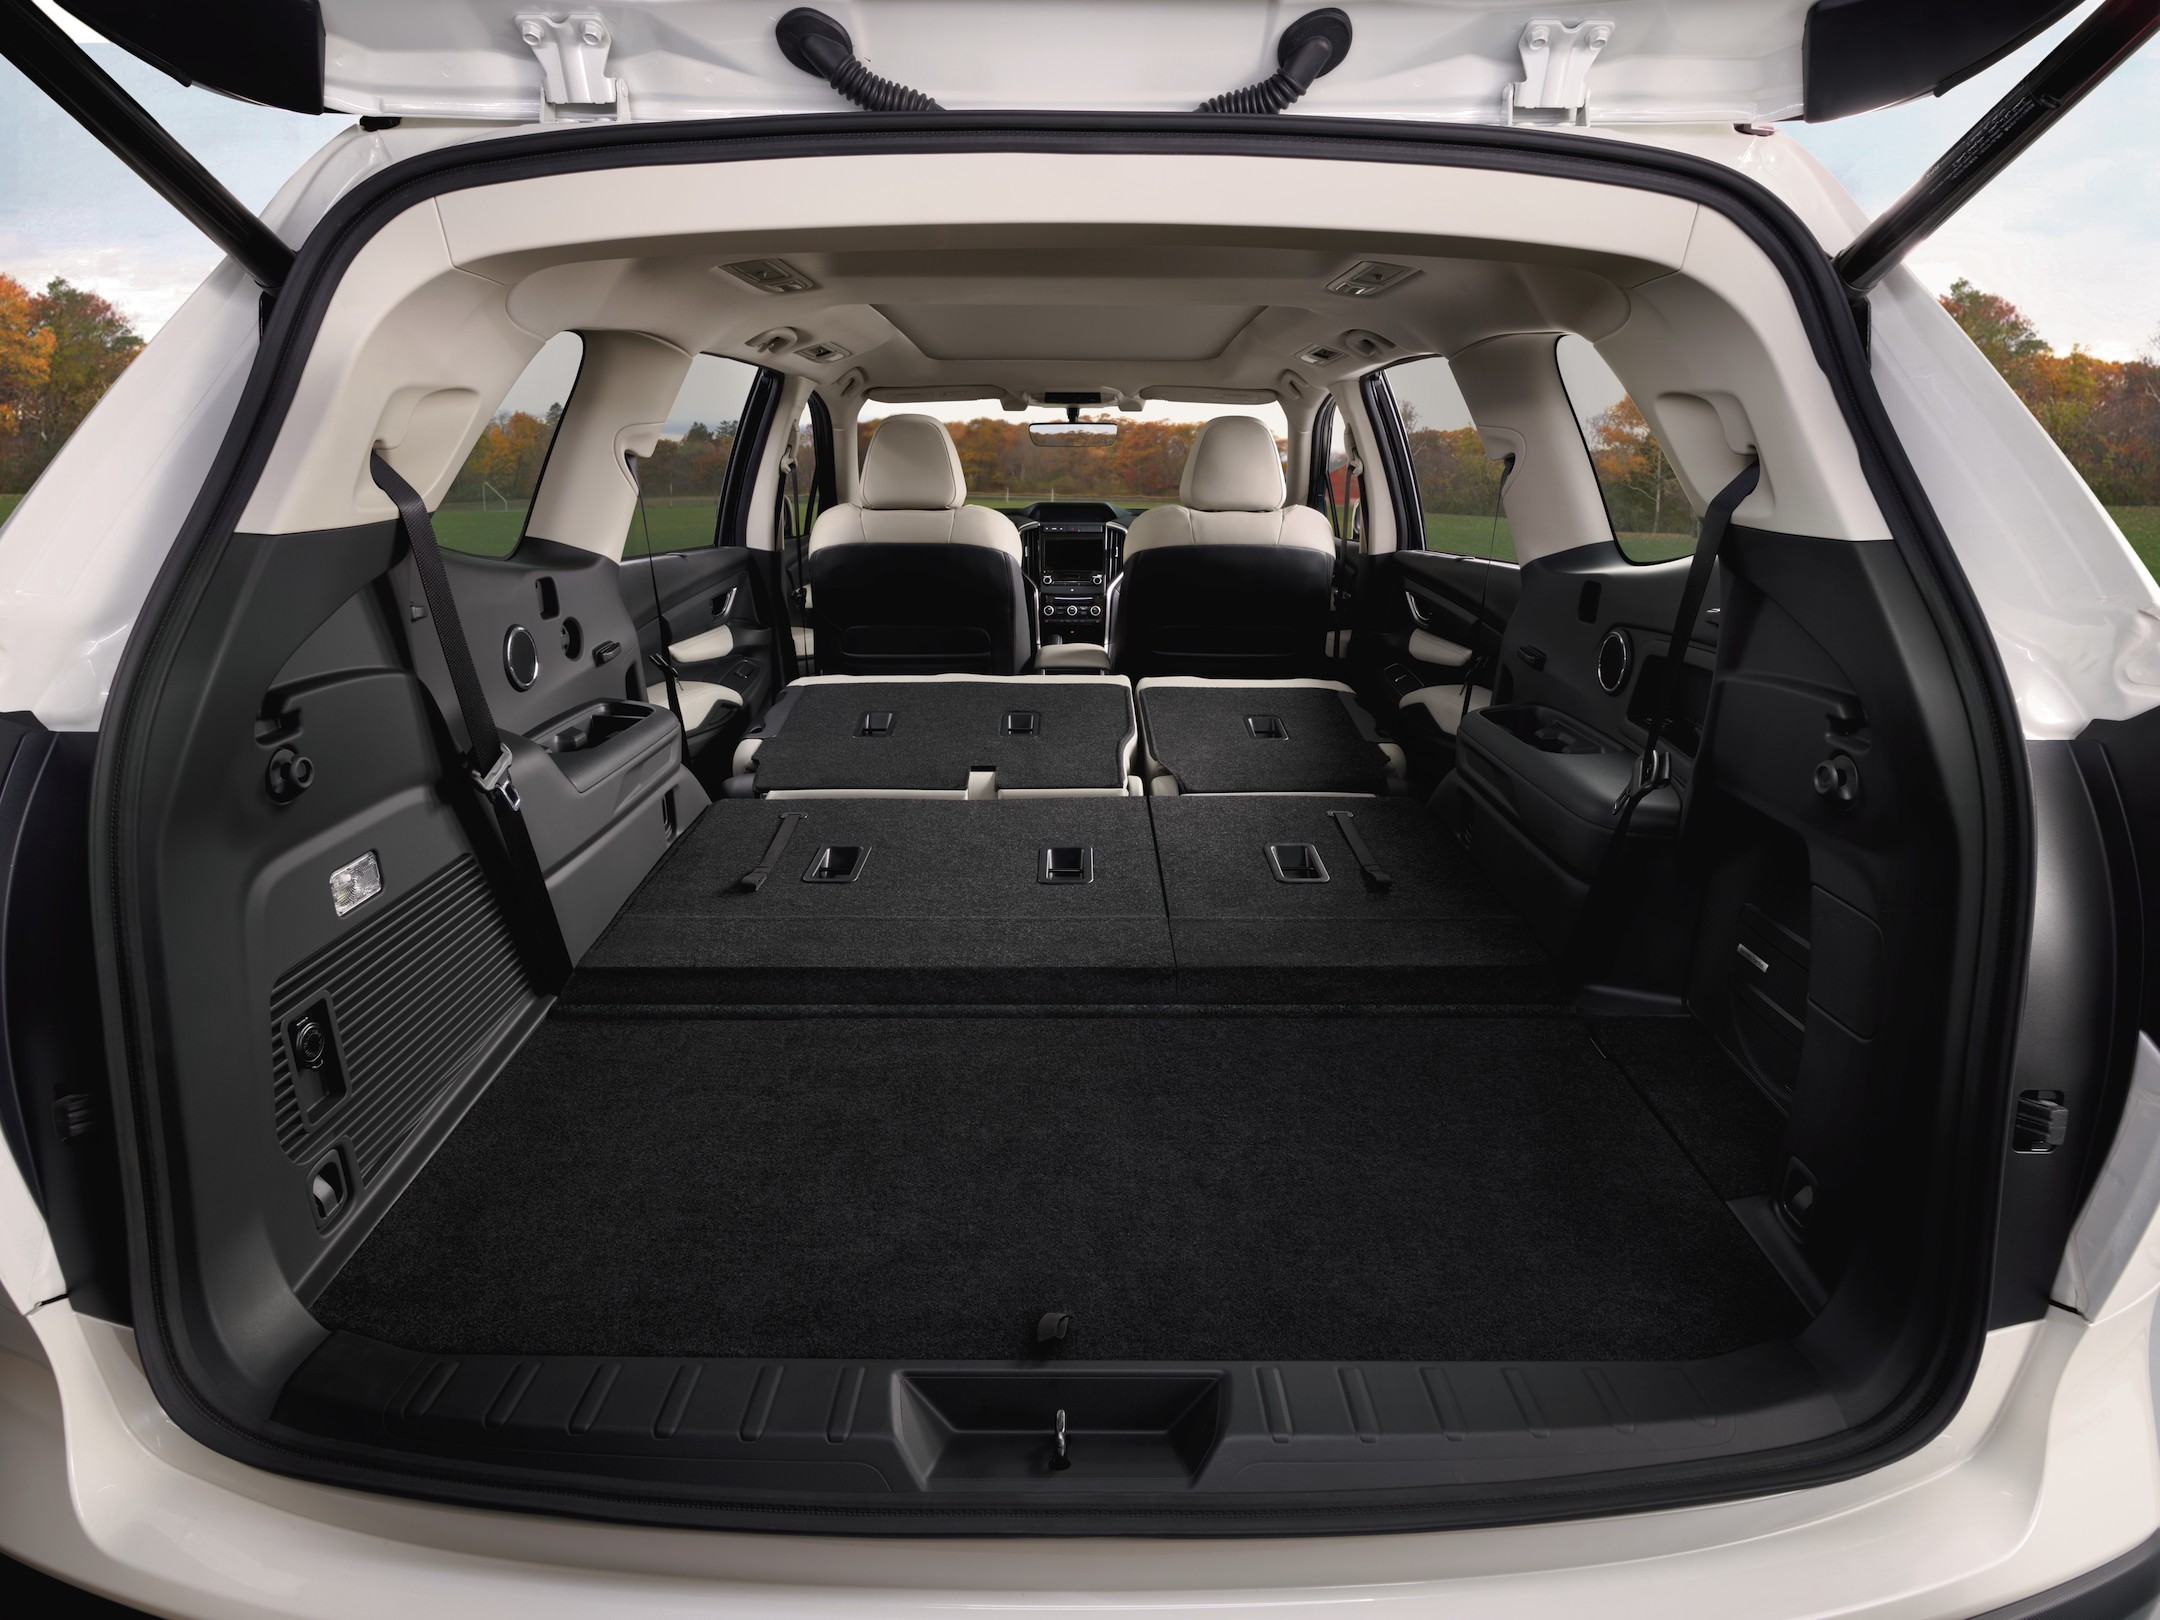 2019_Ascent_Limited-Interior_3